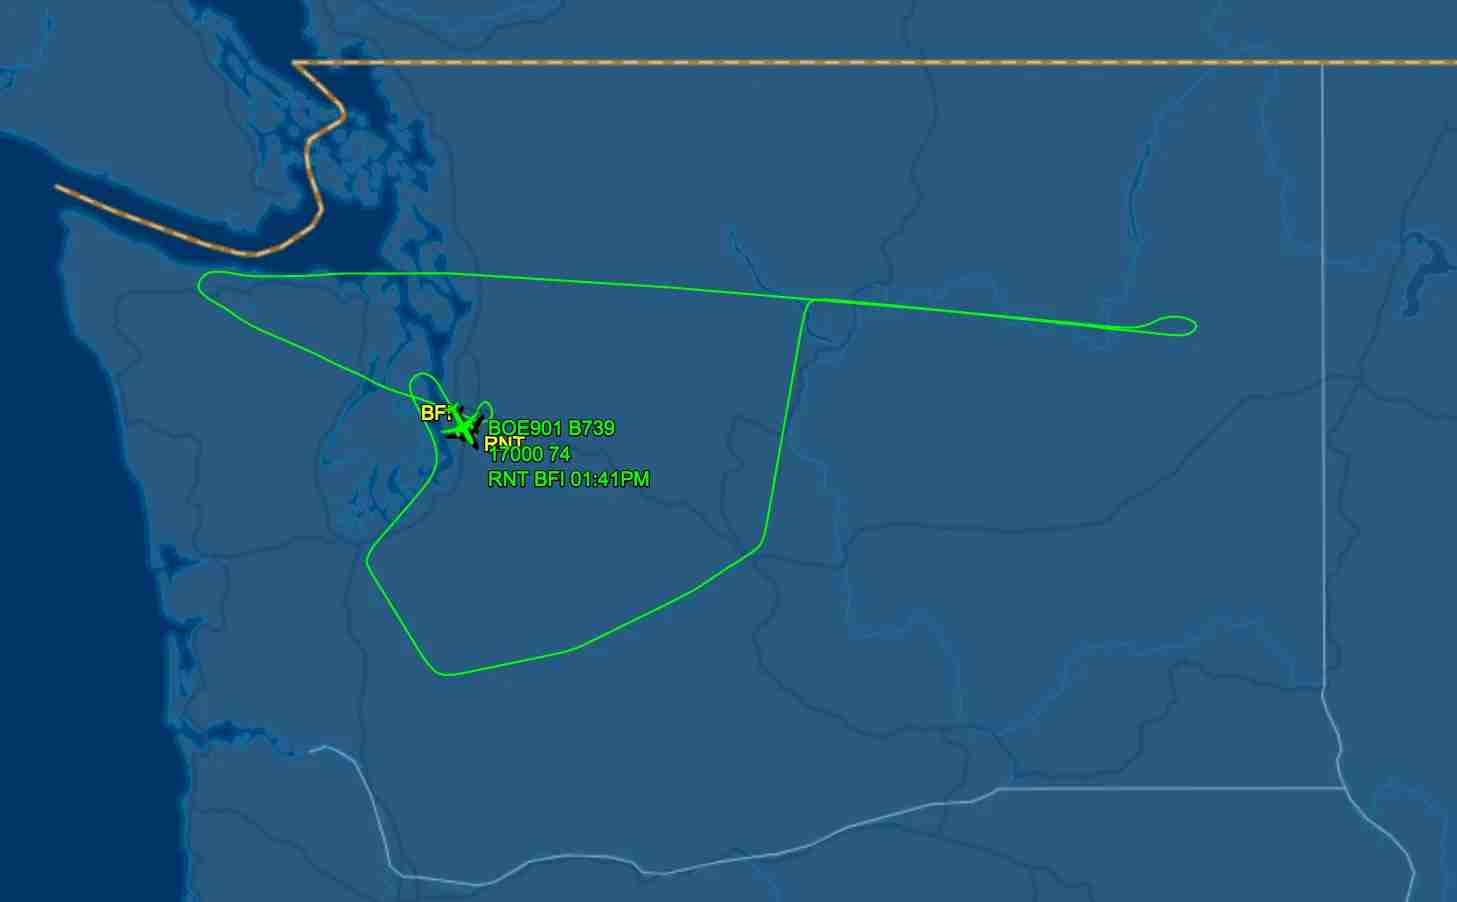 Route of the maiden 737 MAX-9 first flight, via FlightAware.com